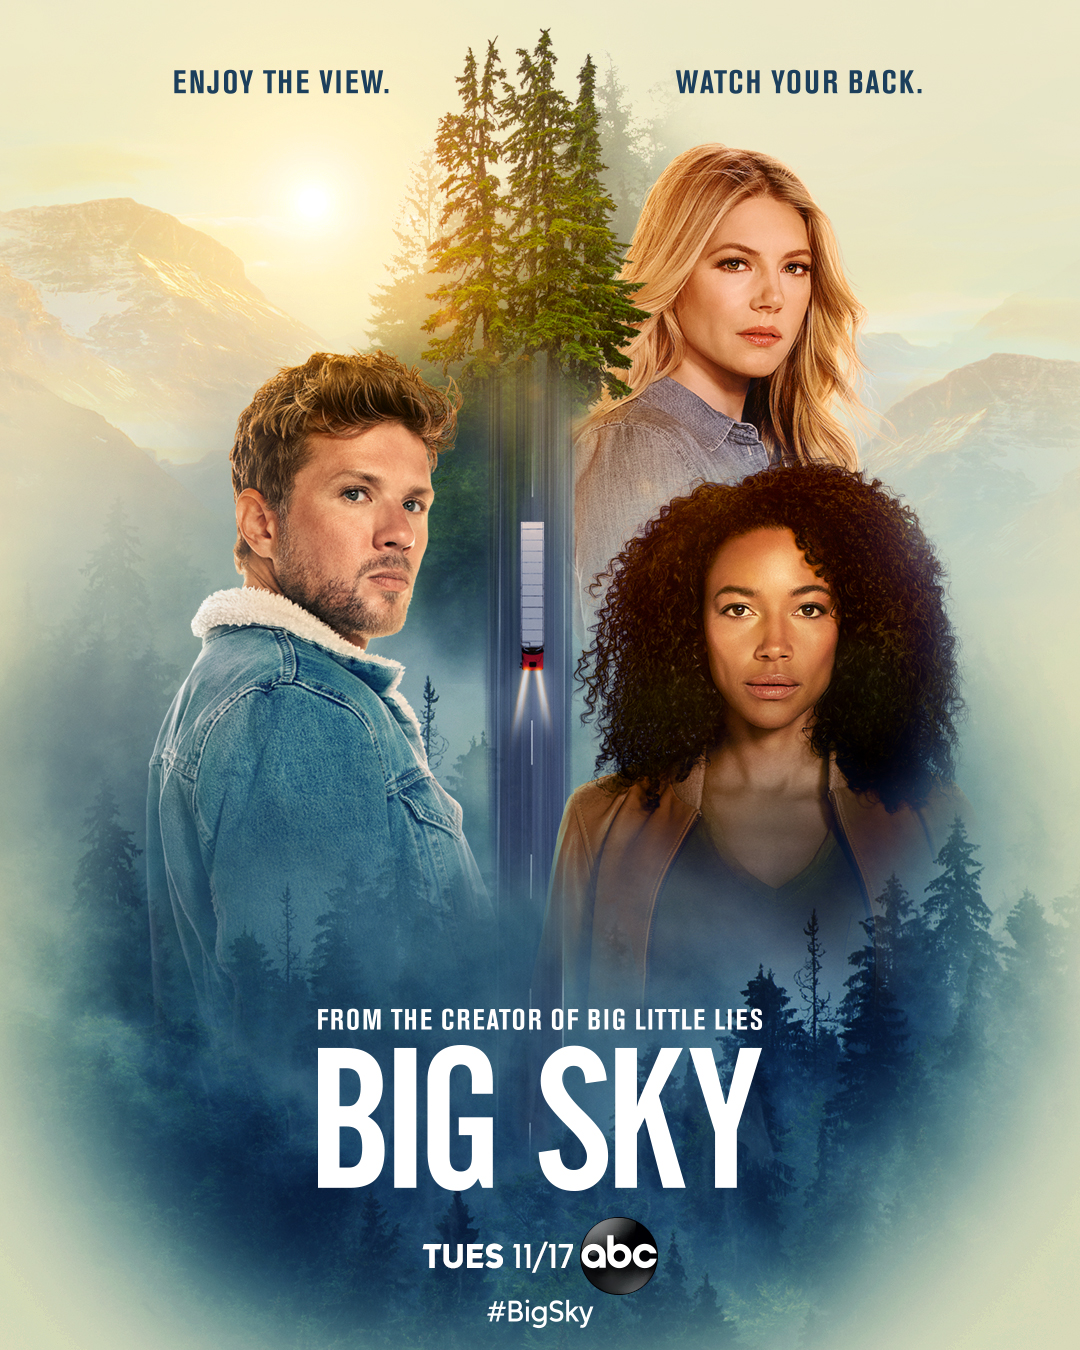 Big Sky (2020) - Season 1 Episode 10 - Catastrophic Thinking